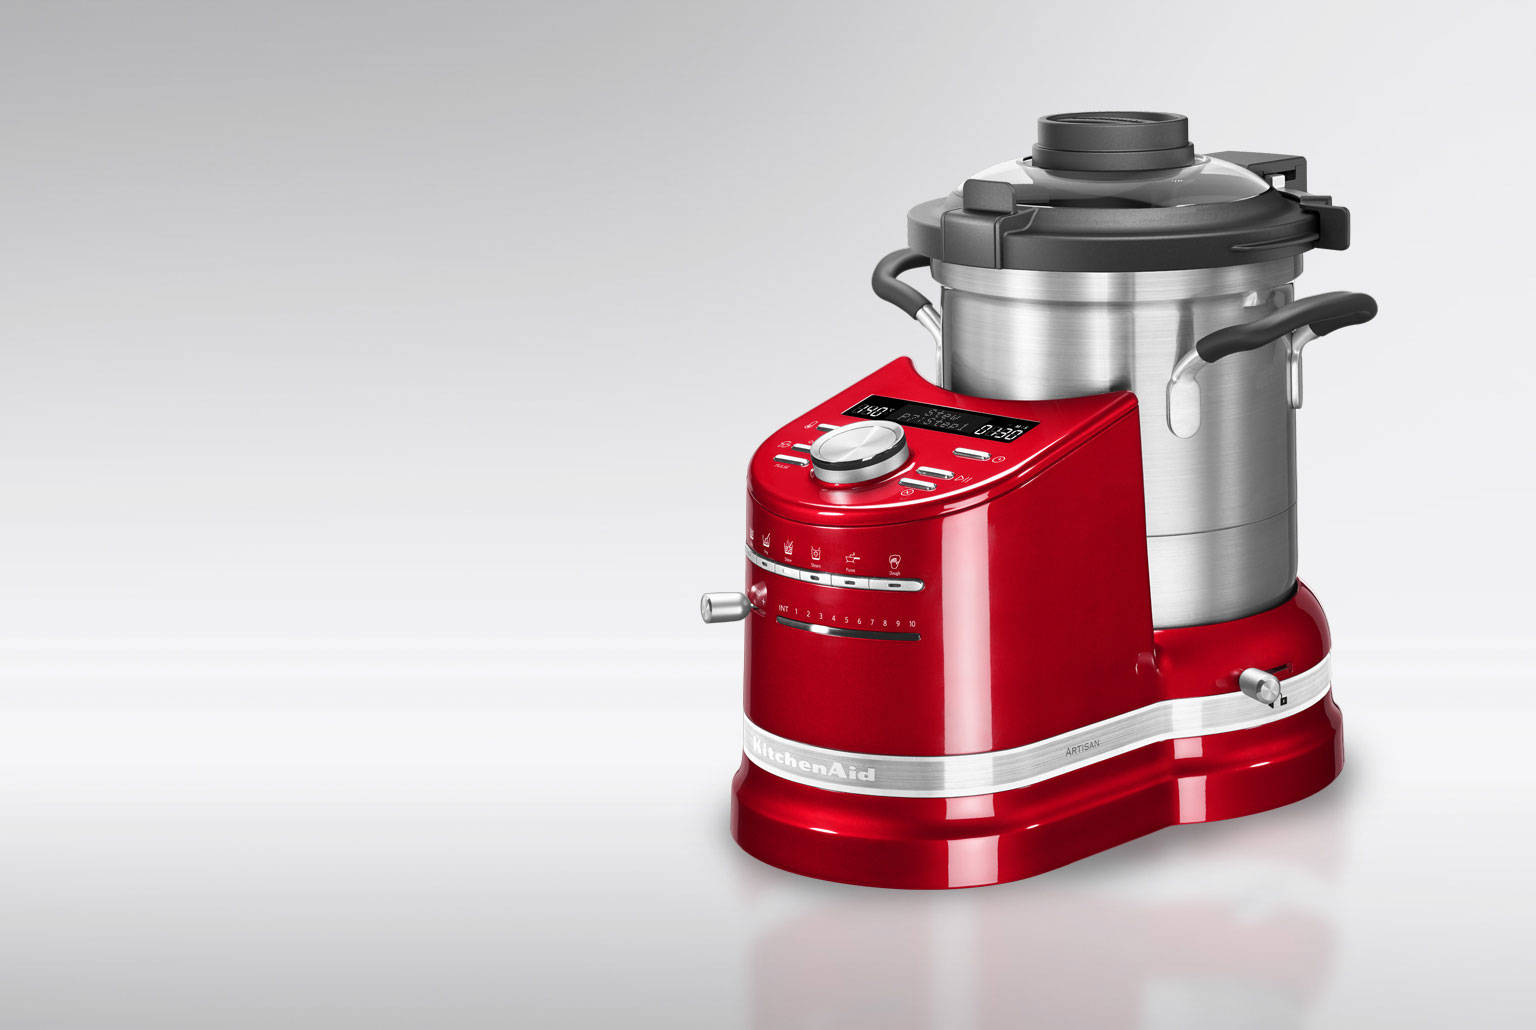 KITCHENAID ARTISAN COOKPROCESSOR